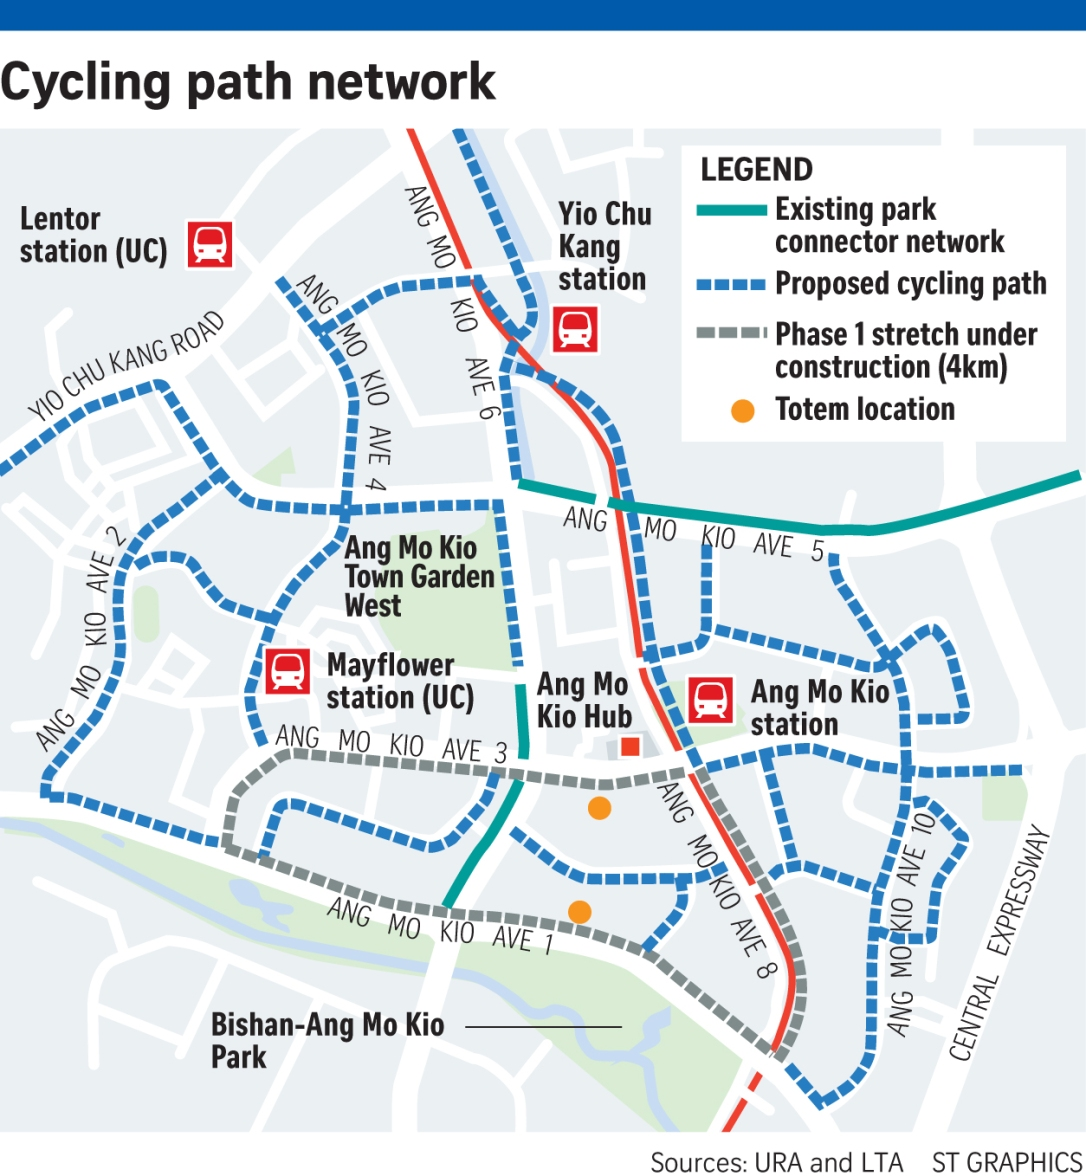 AMK cycling path, park cconnectors, MRT stations by LTA & URA